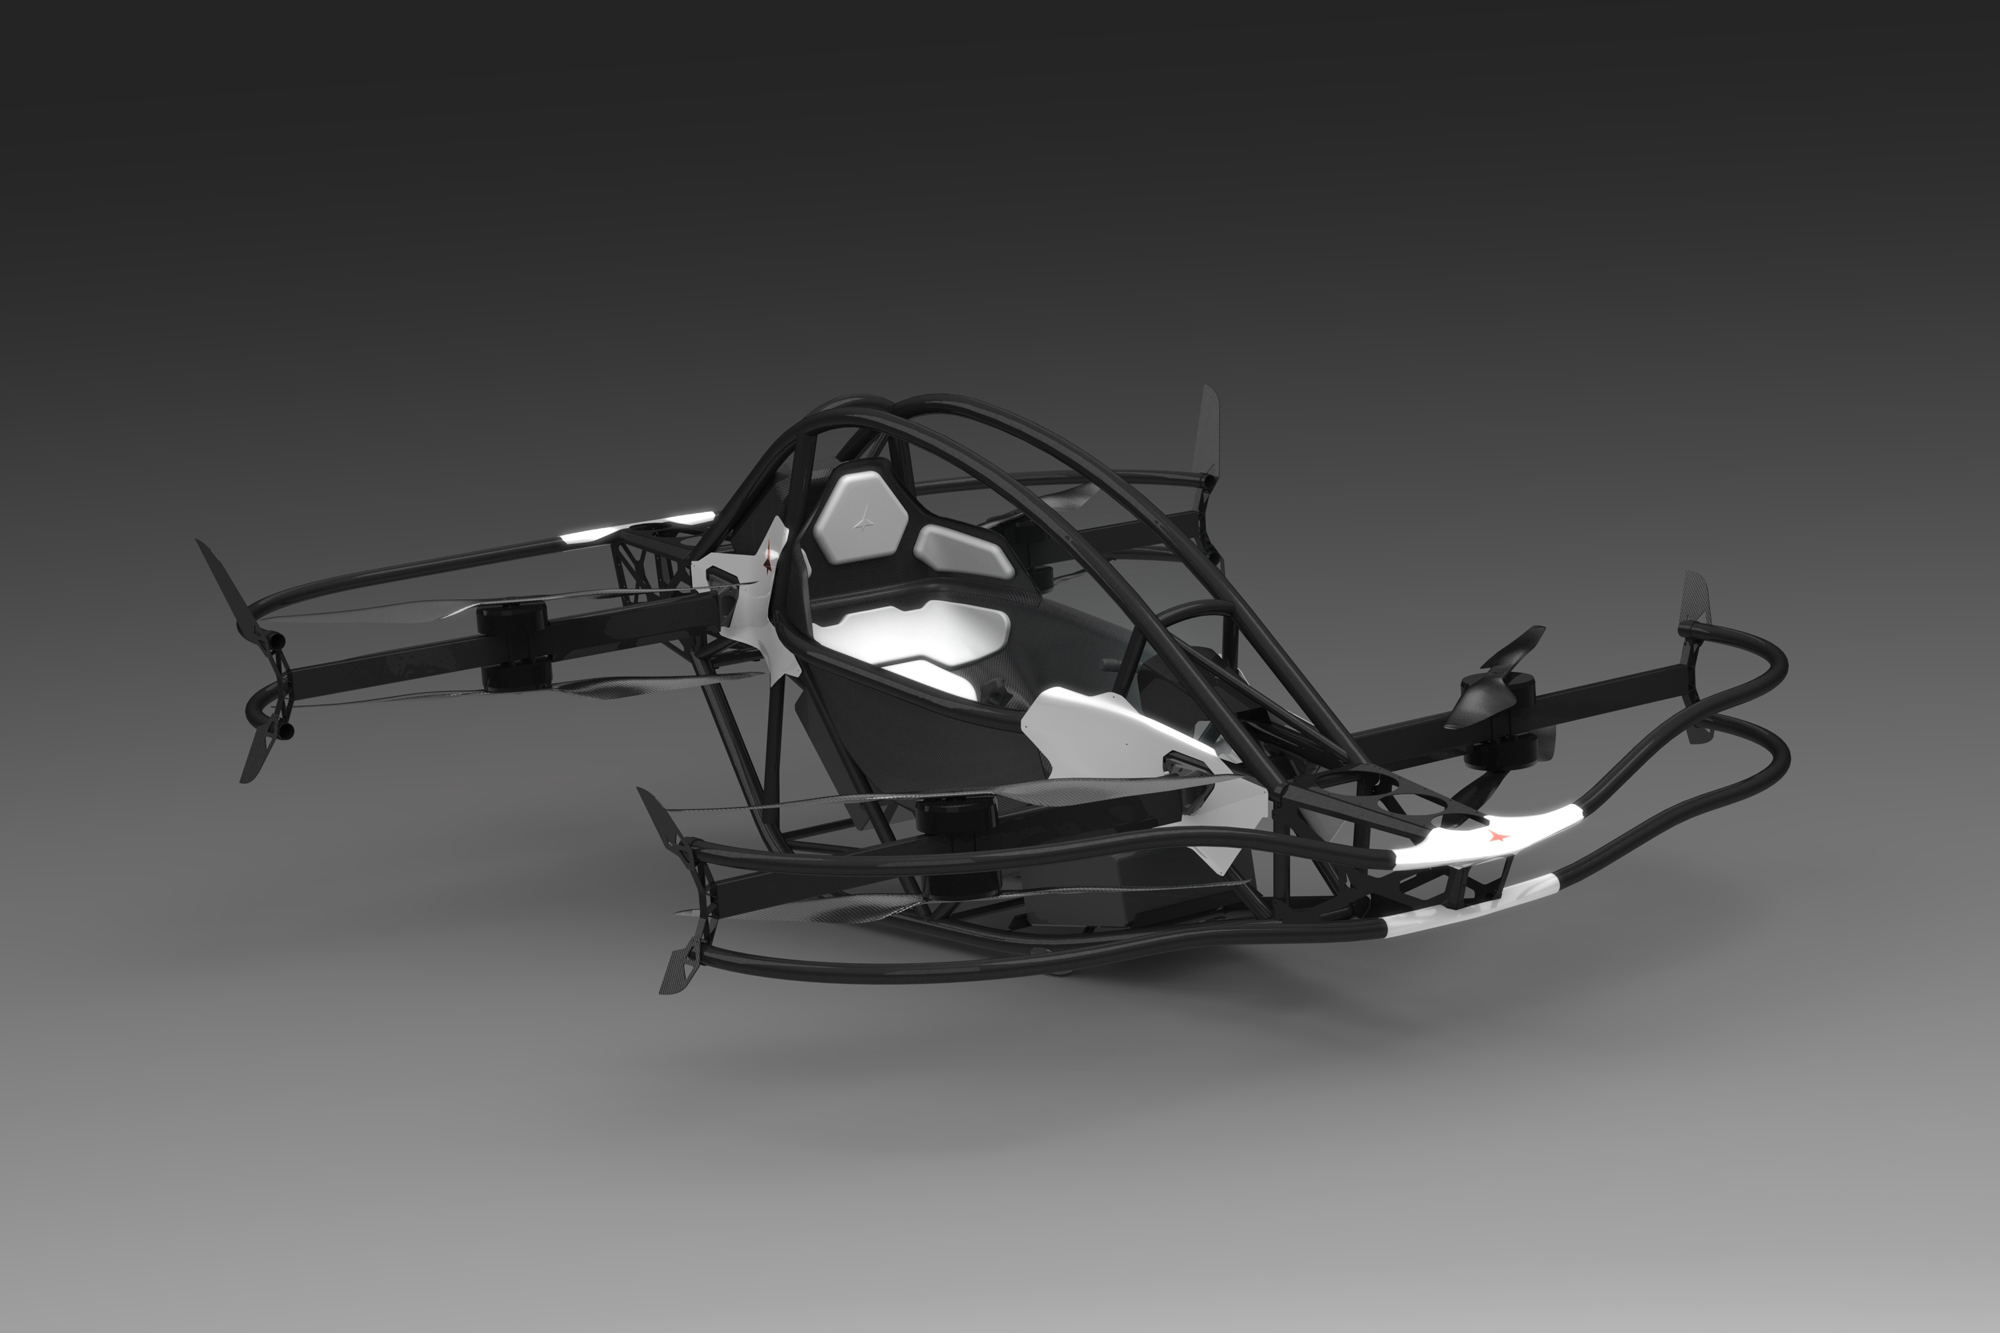 Jetson ONE eVTOL aircraft.